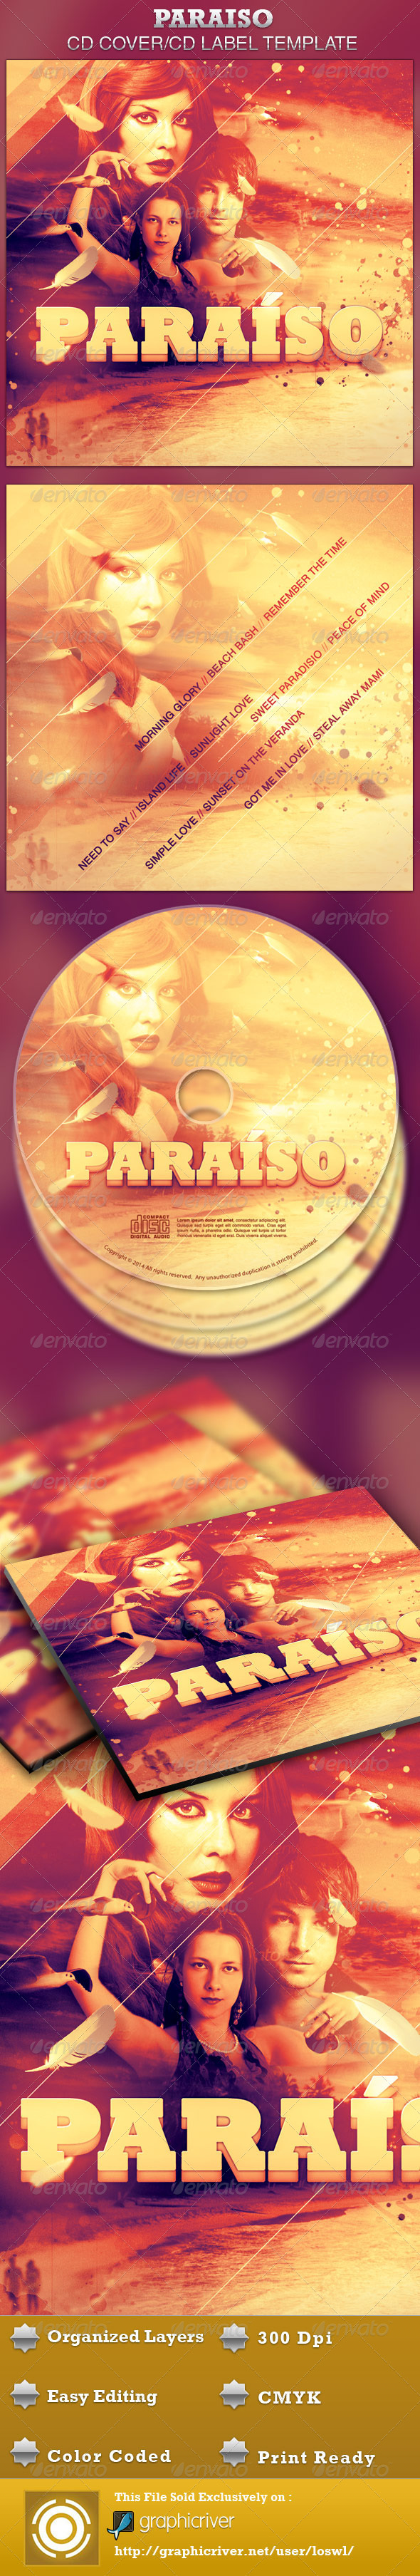 GraphicRiver Paraiso CD Artwork Template 4280278